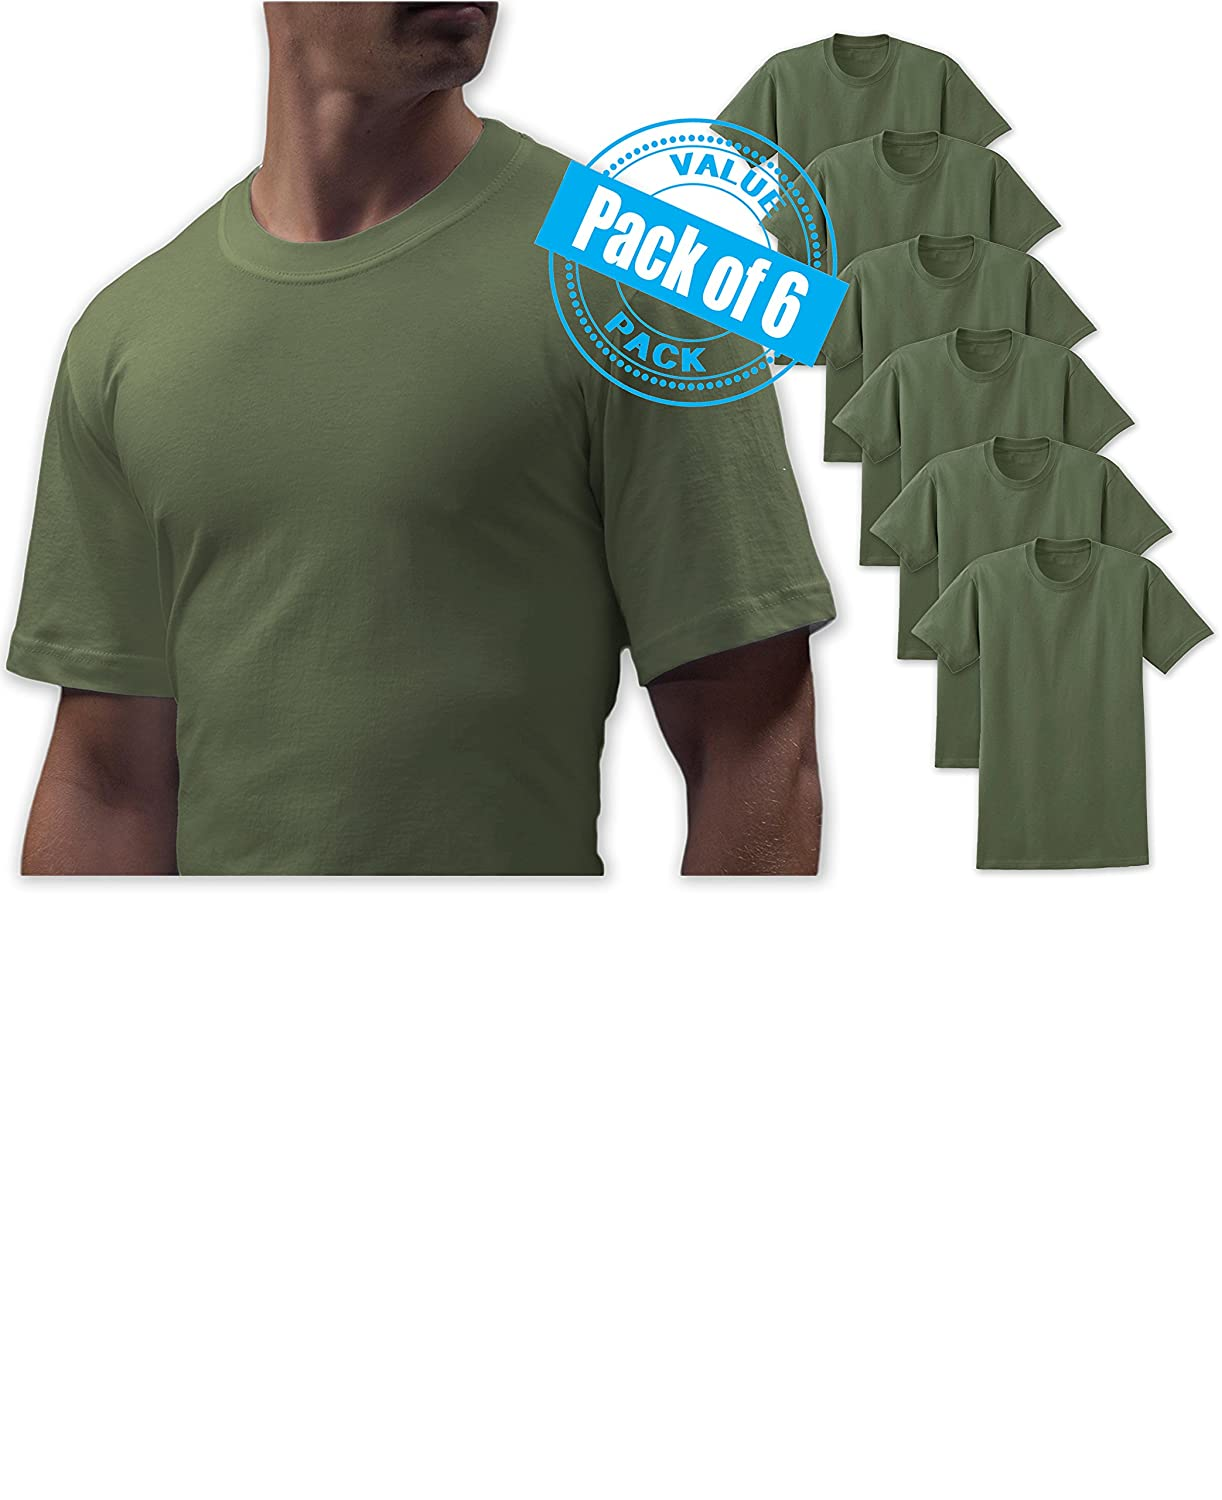 4fb1e5c07 Pack of 6 / 100% Combed Cotton Lightweight Crew Neck T Shirts for Big Men  Army Military Camo Green Soft Cotton Fabric is Light enough for Undershirt  or ...